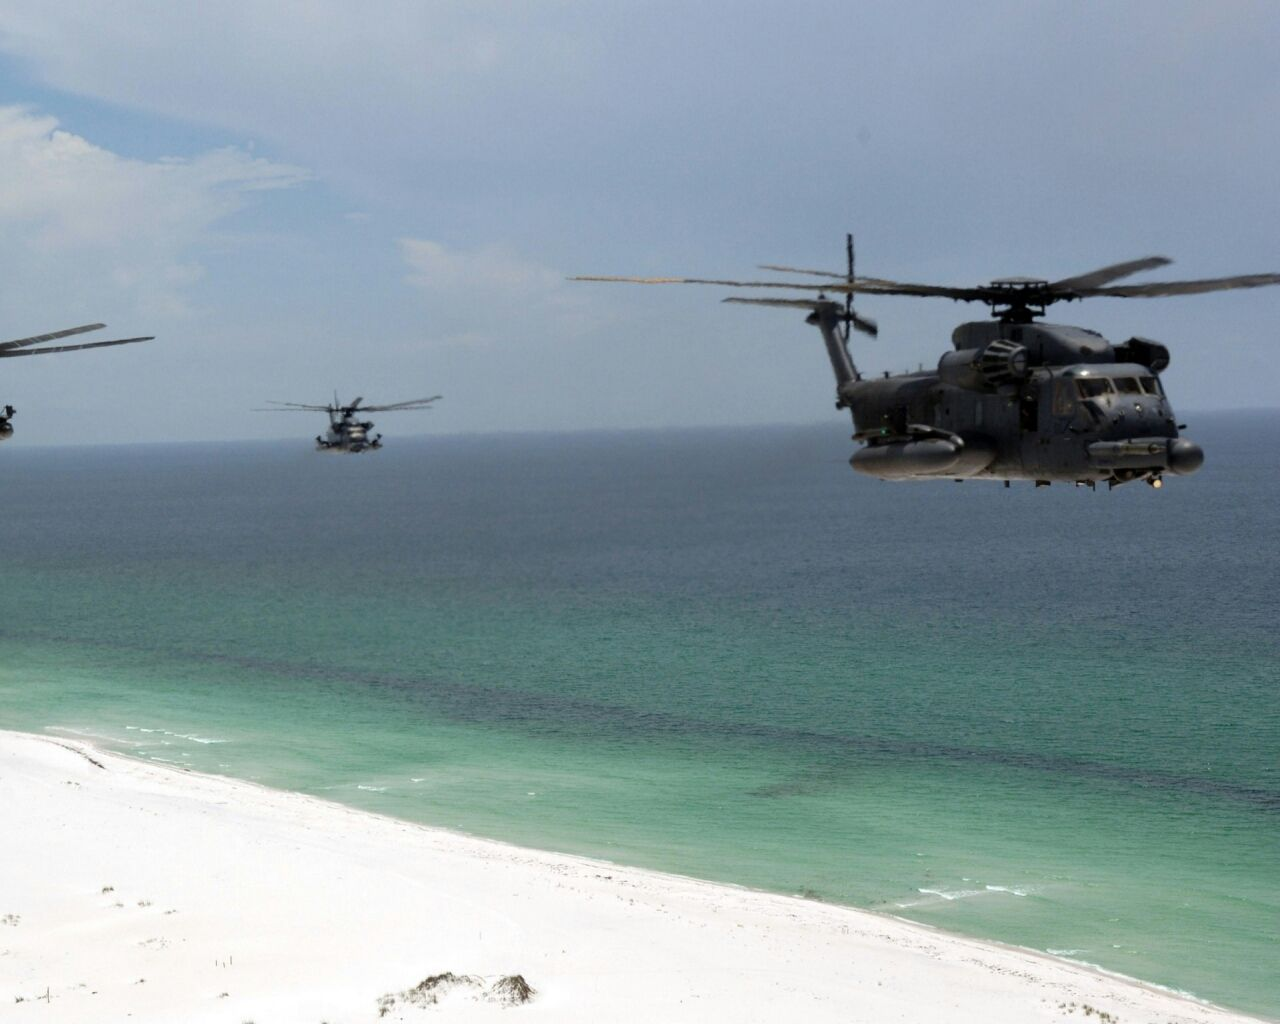 Helicopters flying along the emerald coast, Florida